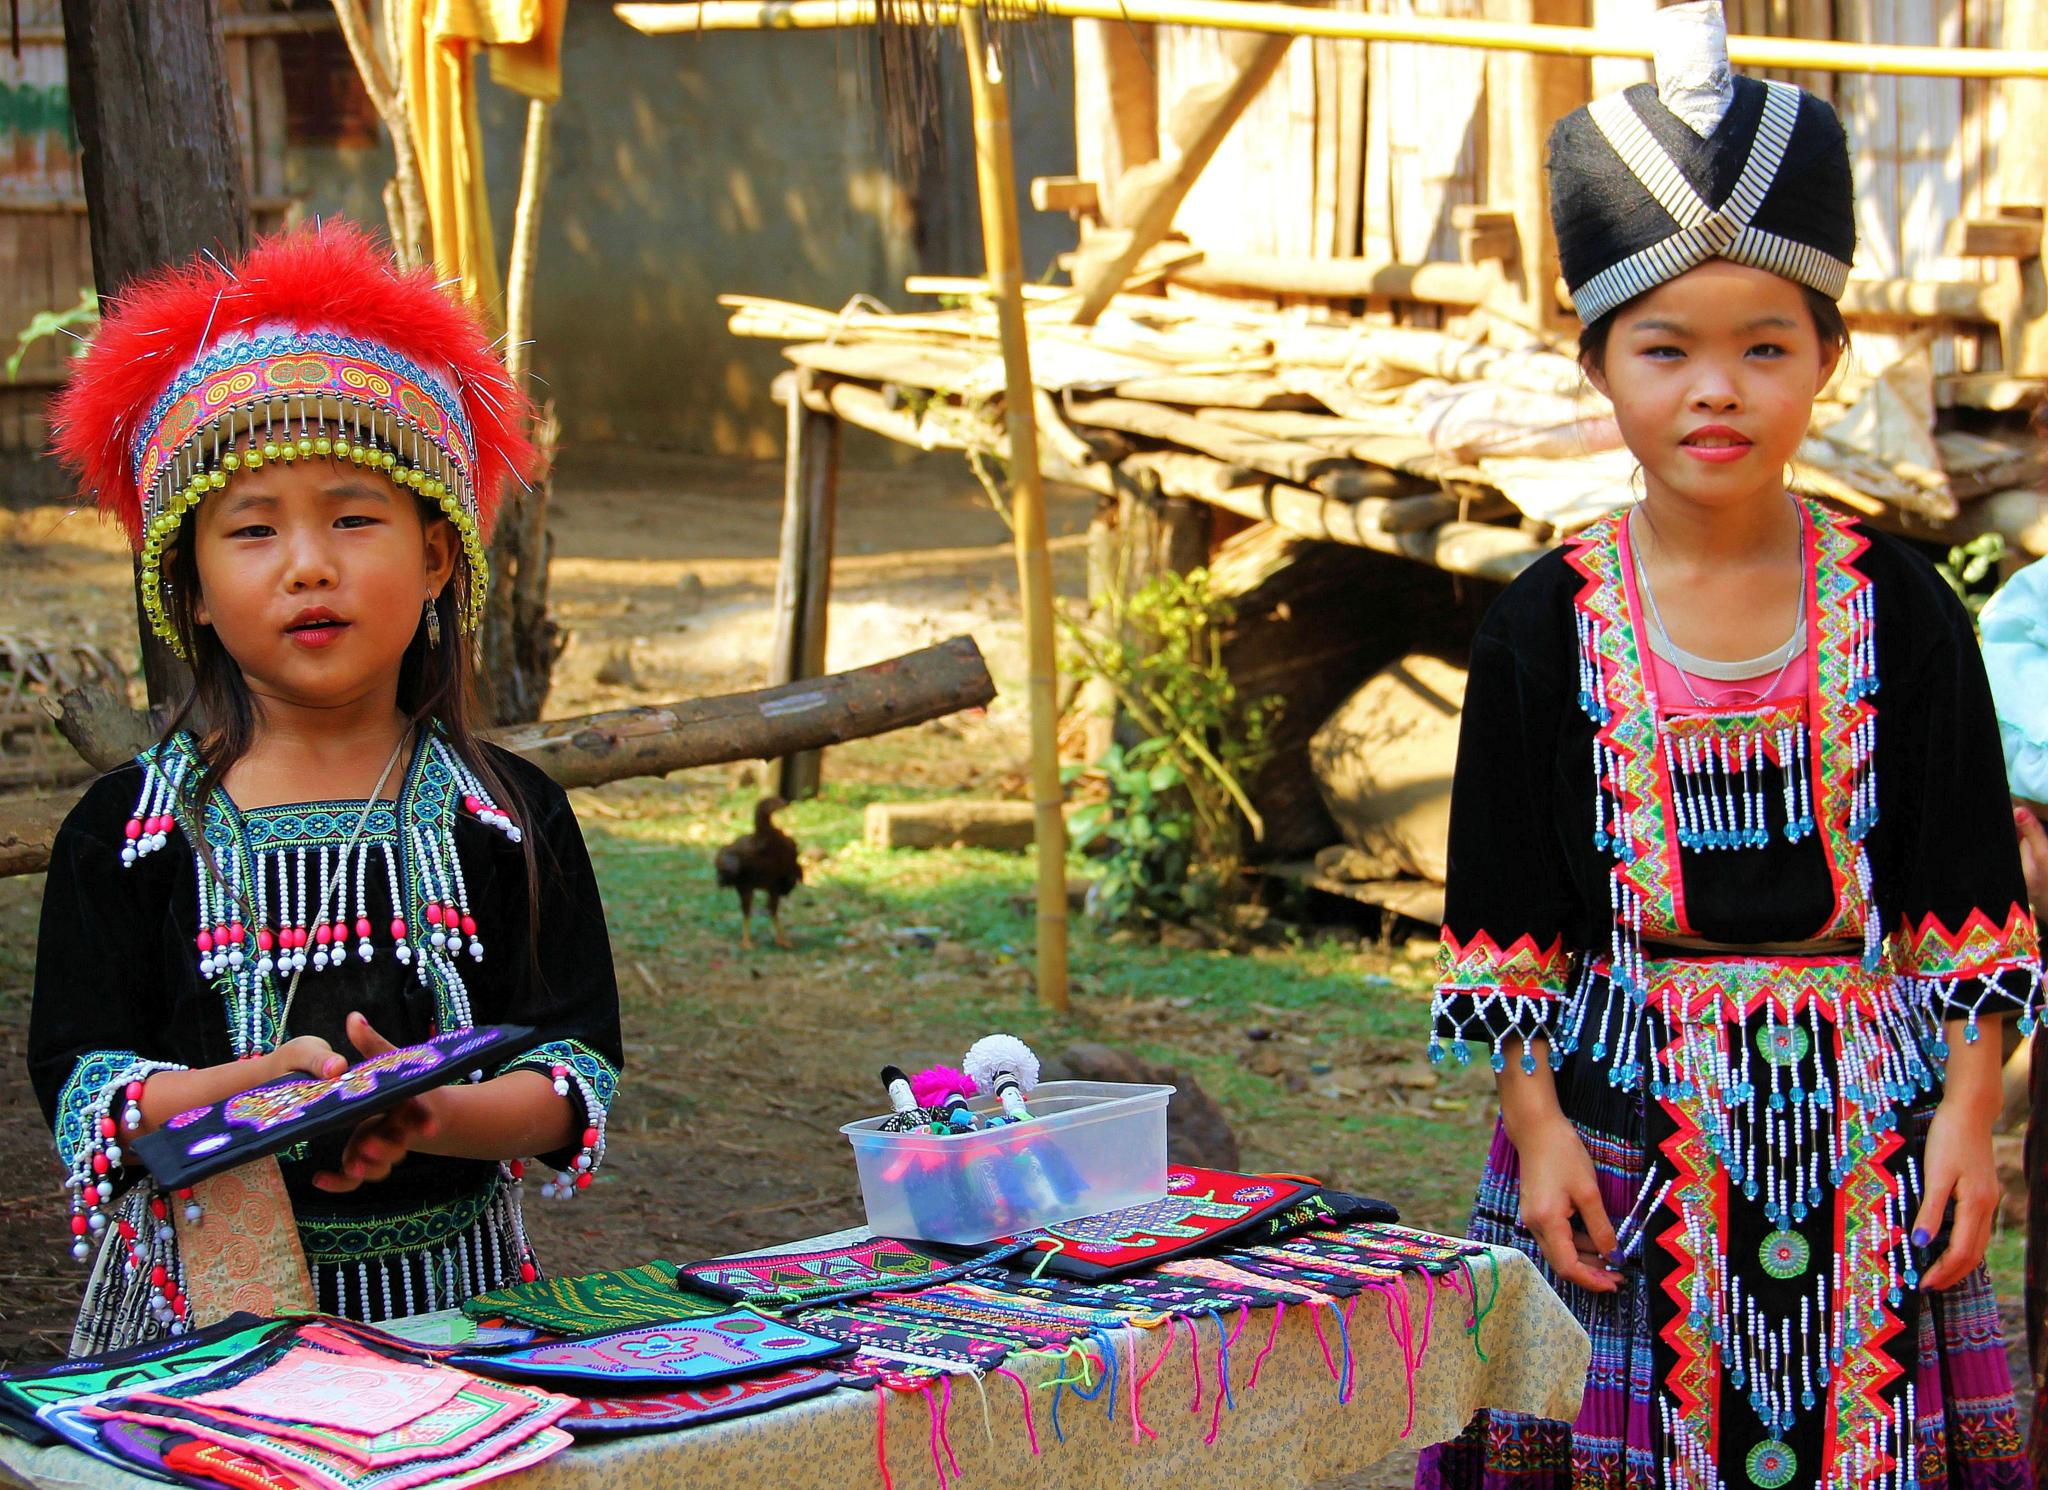 Hmong girls by Mike Thompson